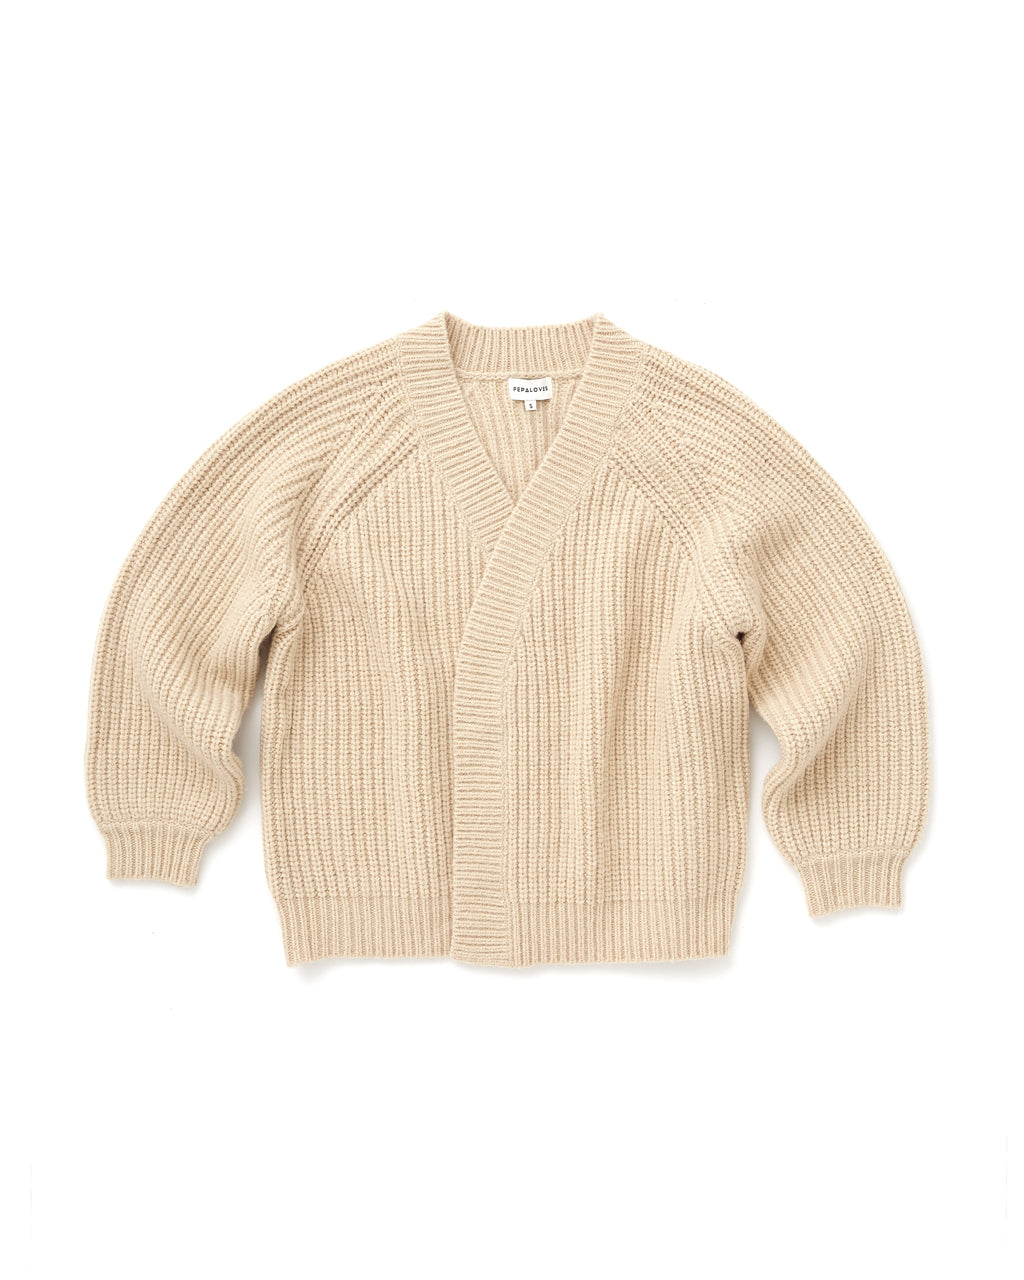 sand colored cardigan